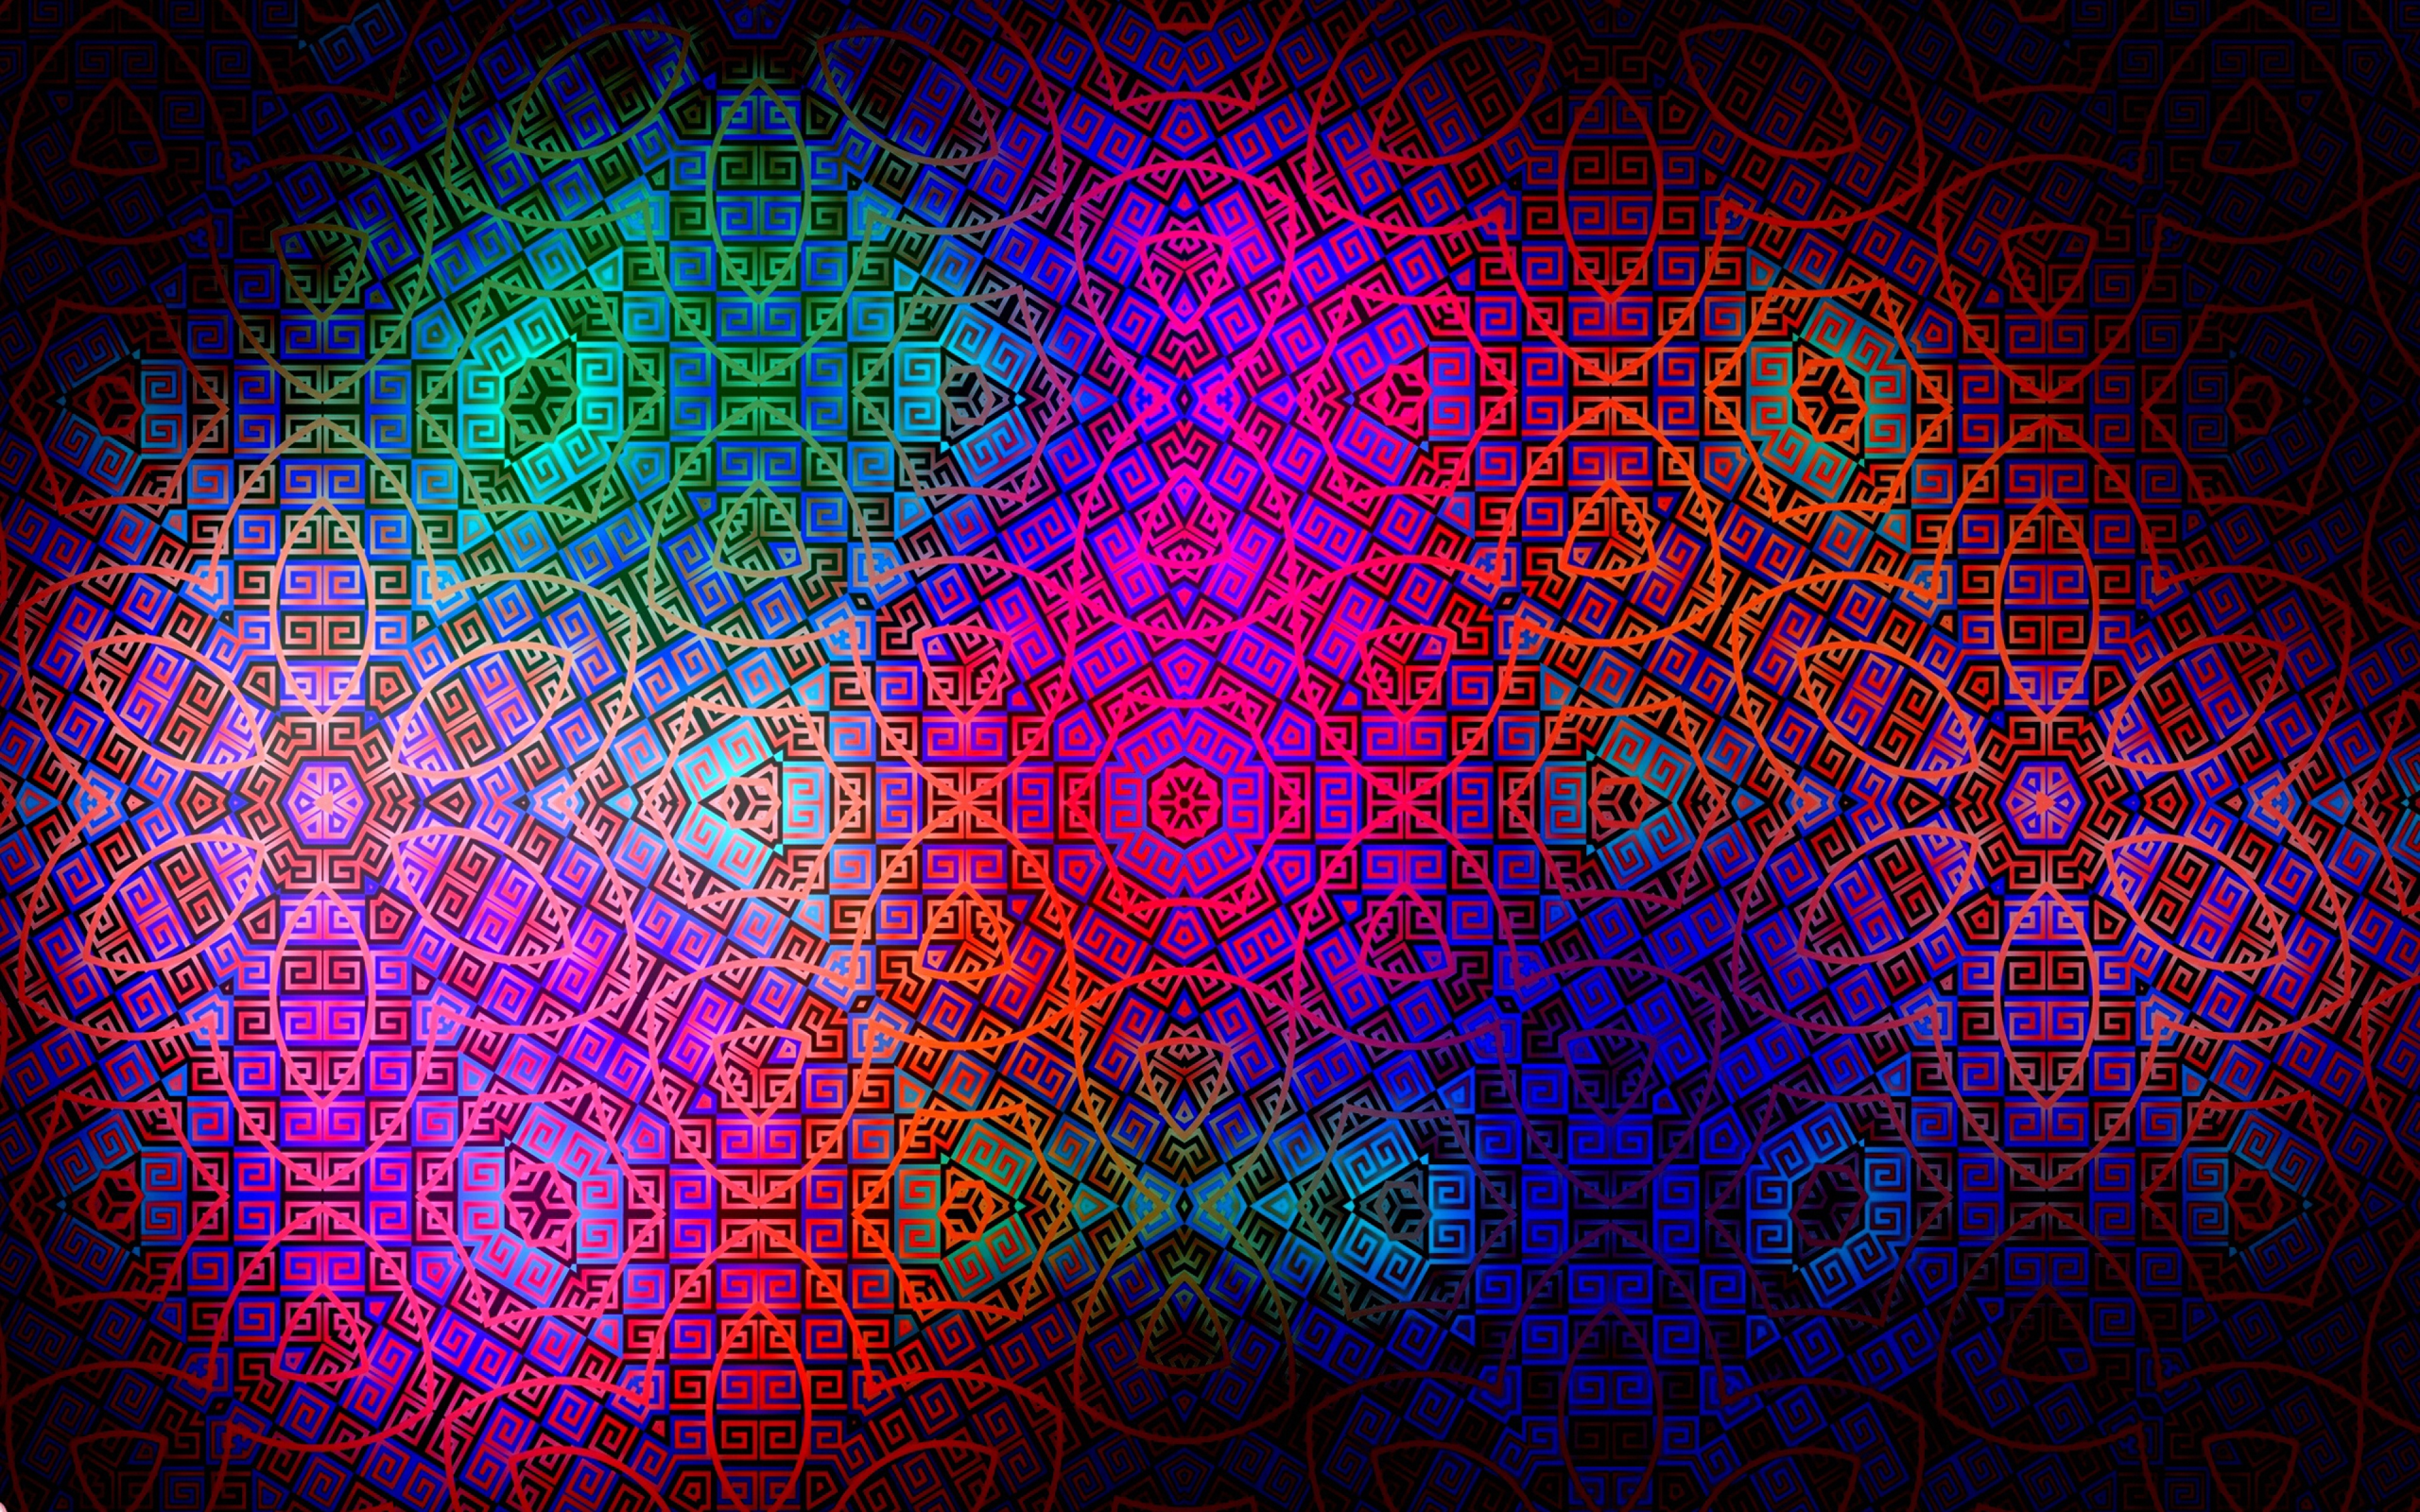 Pattern Color Colorful Dark Wallpaper Background Ultra HD 4K 3840x2400